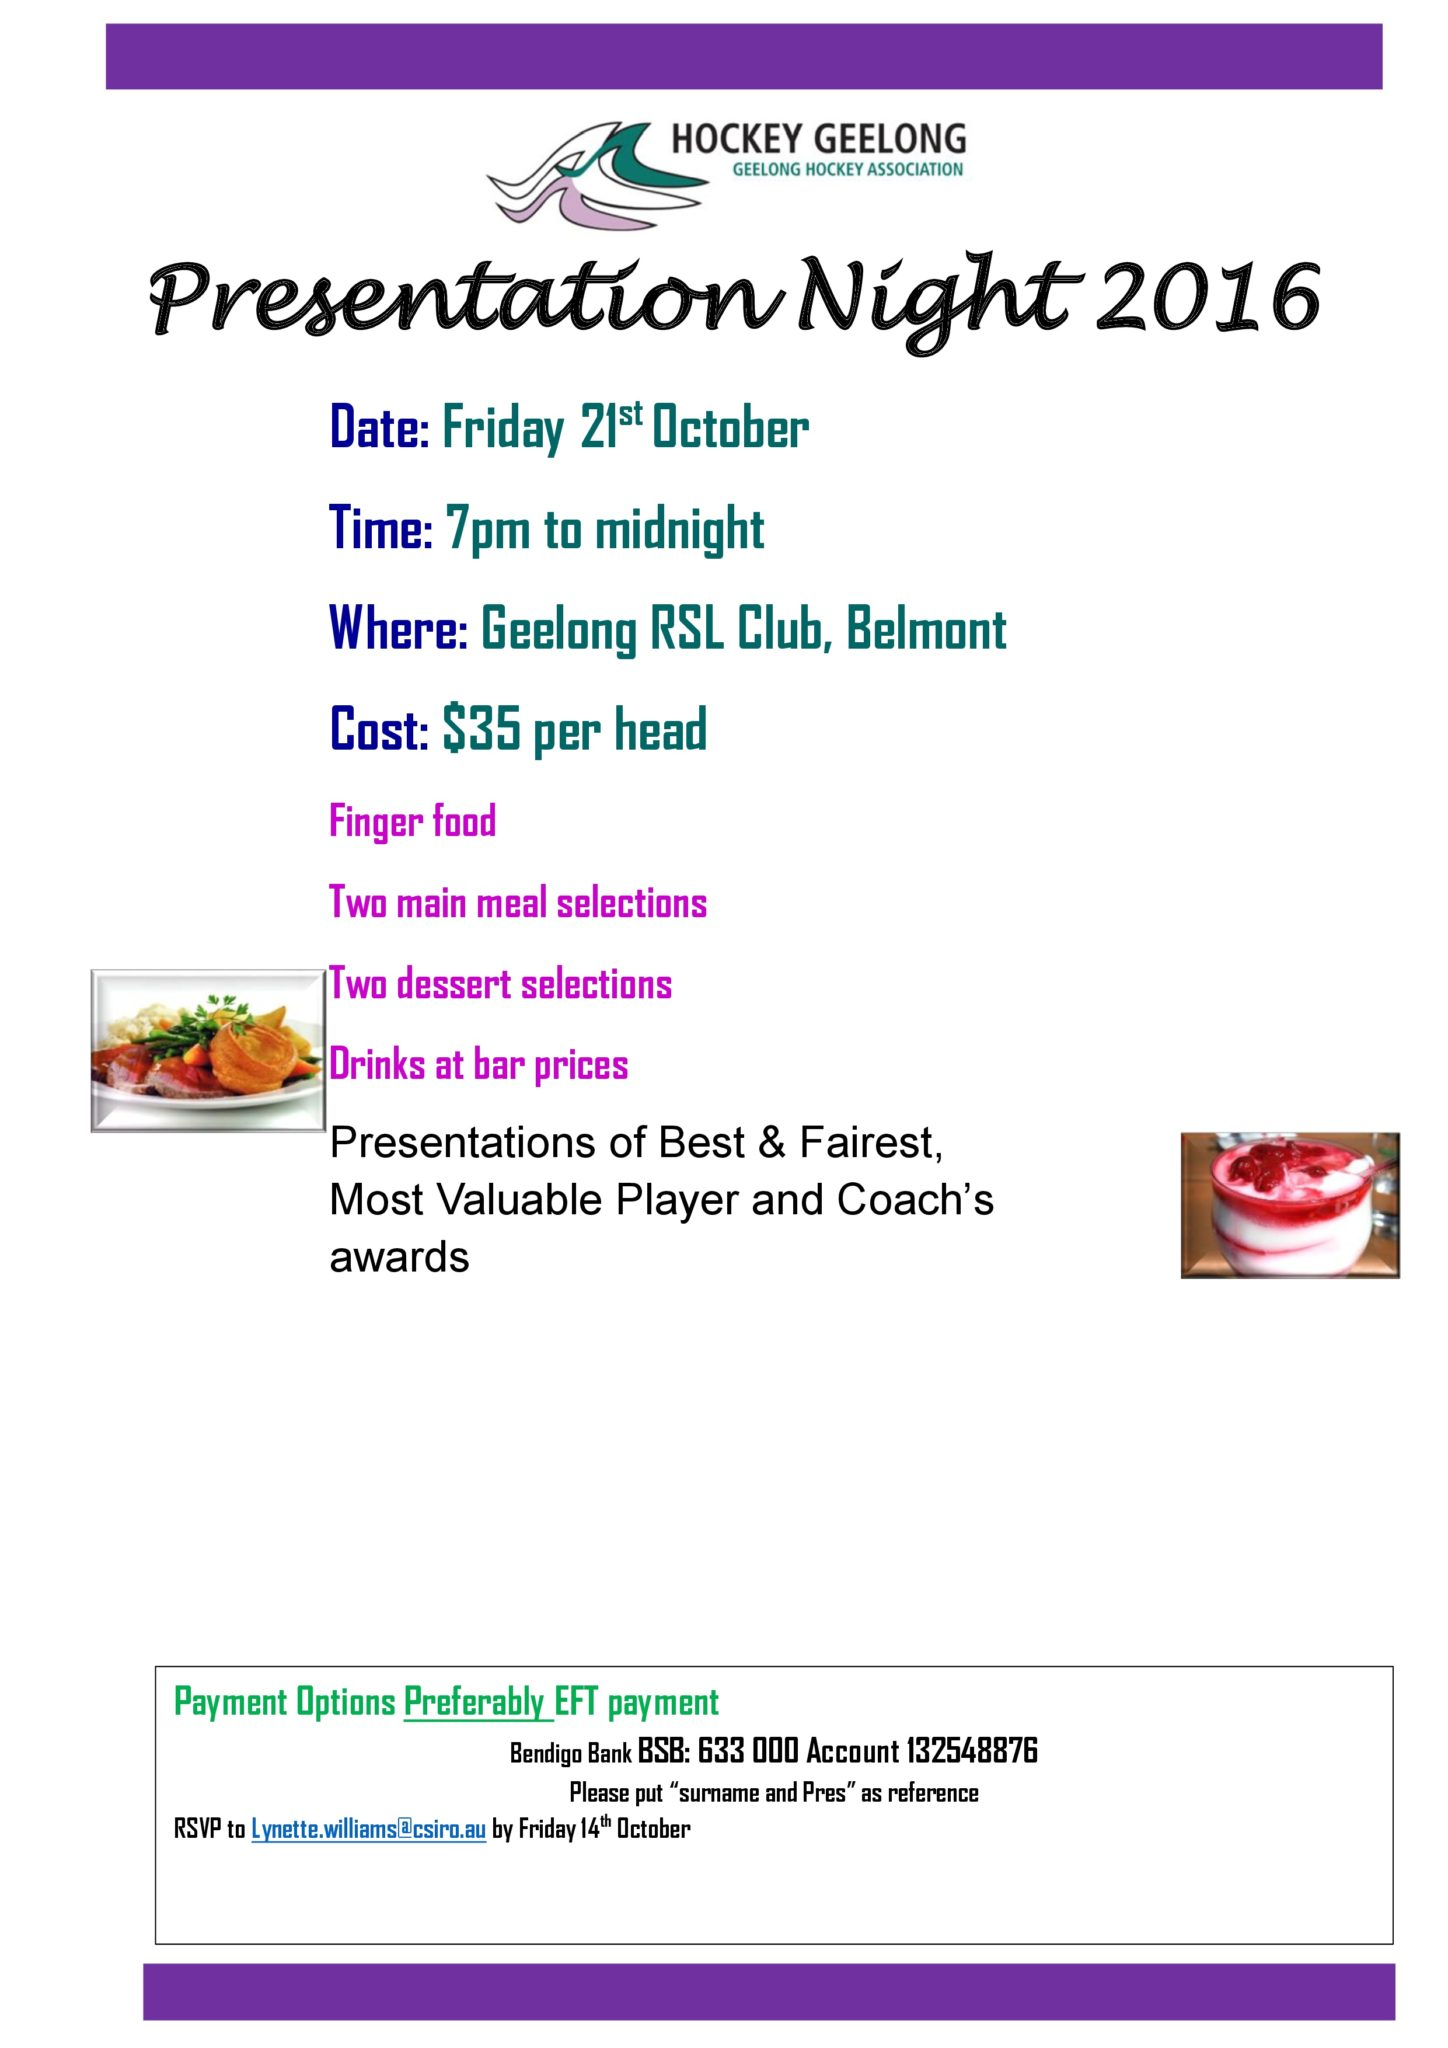 presentation night flyer 2016